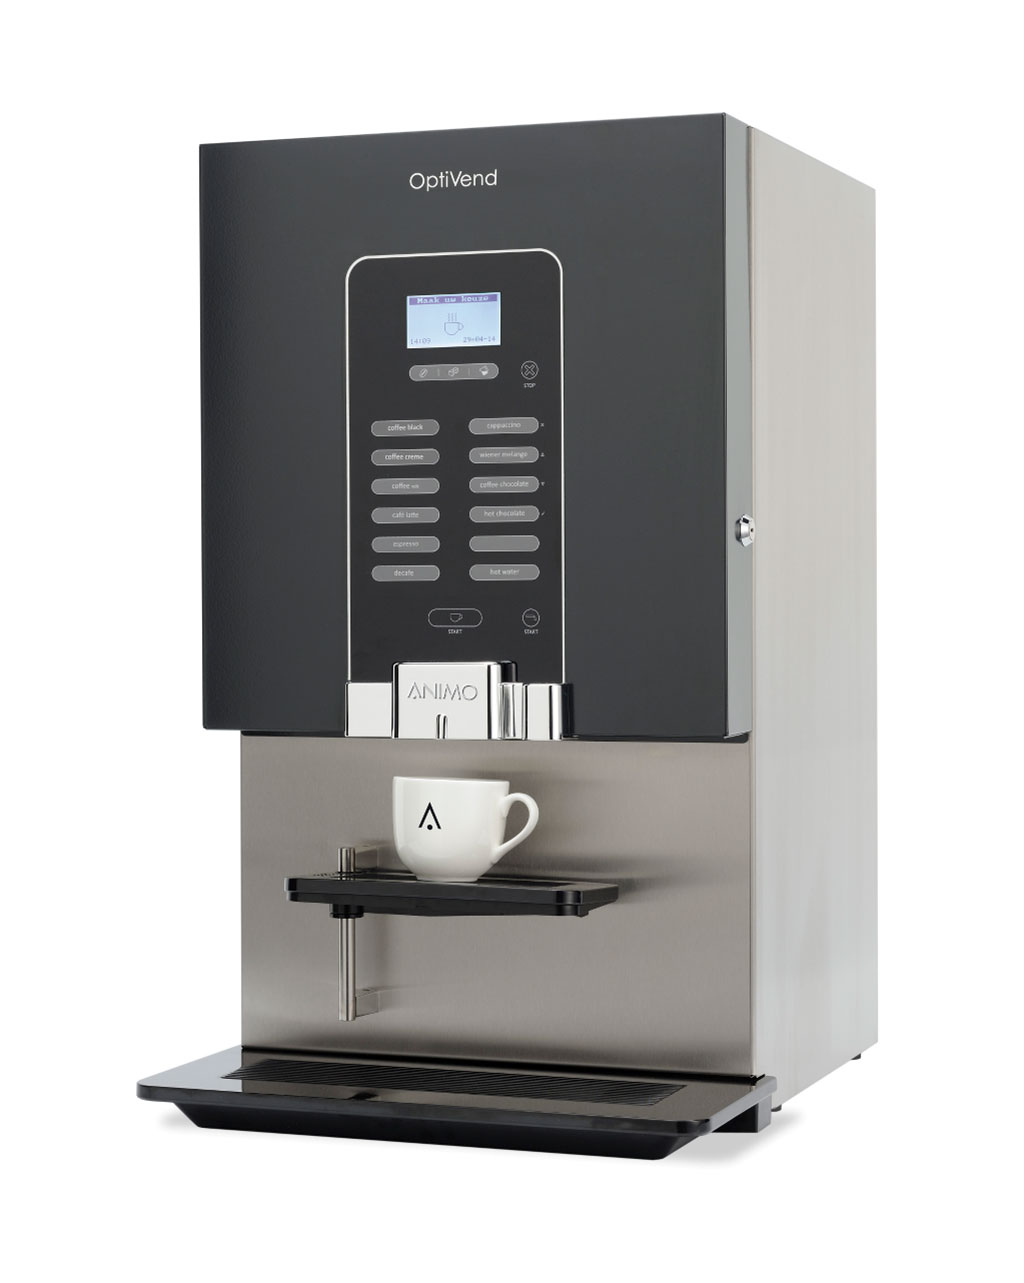 OptiVend Kaffeeautomat von Animo